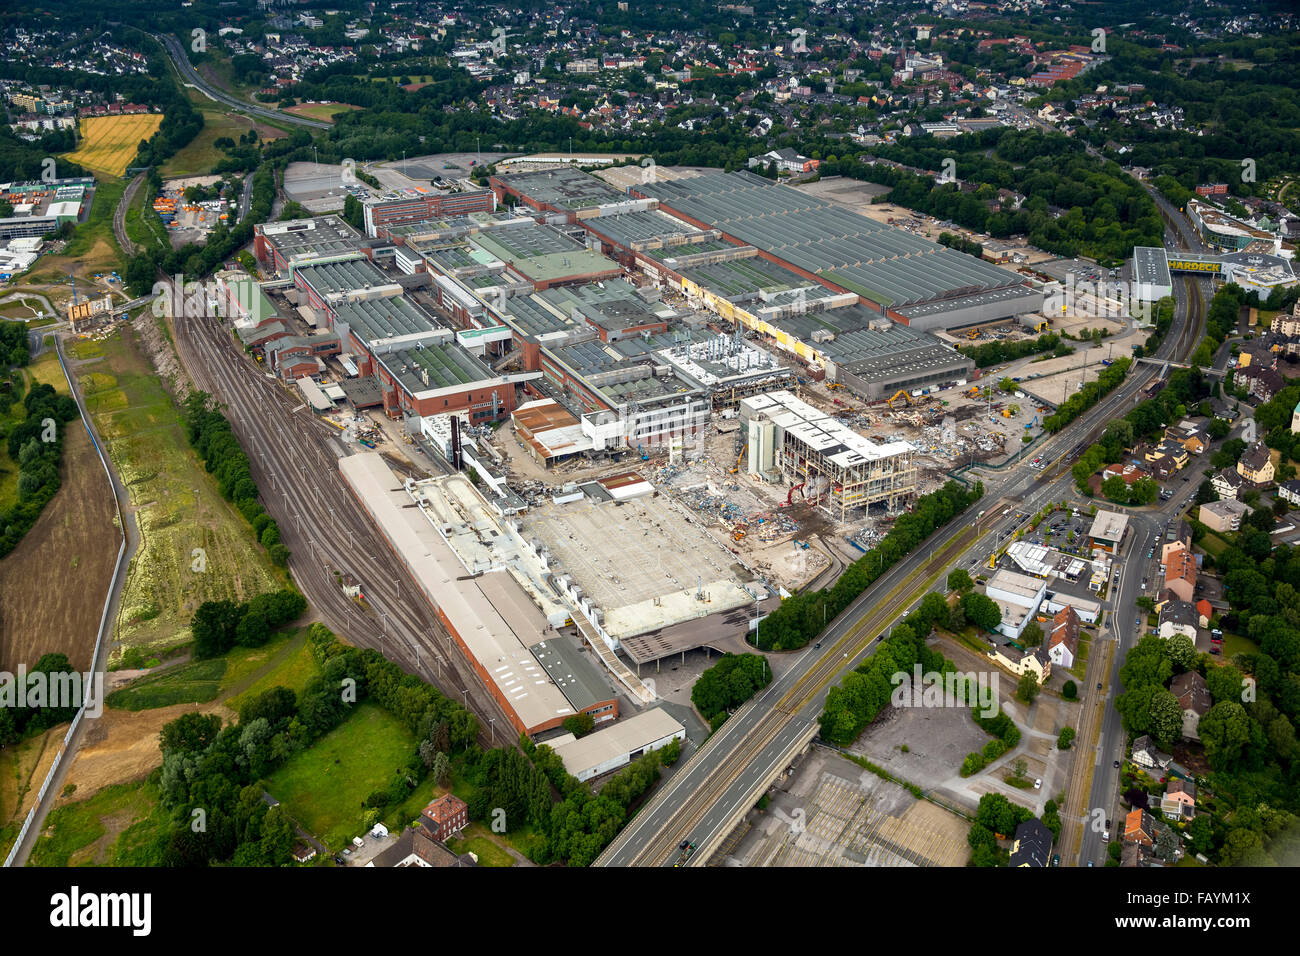 Aerial view, demolition work at Opel plant 1, automotive, structural changes, auto industry, Bochum, Ruhr area, - Stock Image